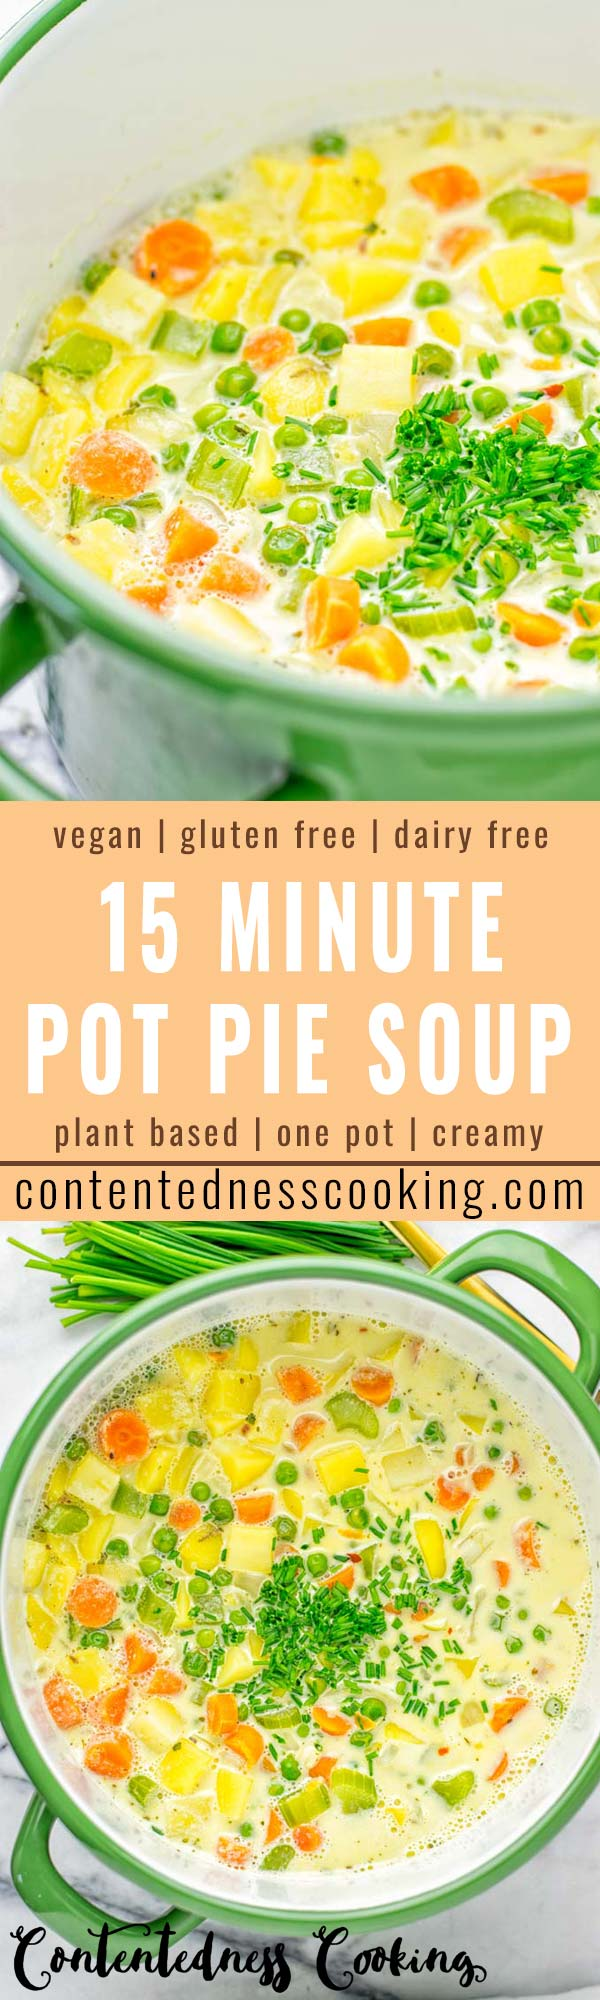 You won't believe this Vegan Pot Pie Soup is ready in 15 minutes. No one would guess it's vegan, gluten free, and dairy free. It's a satisfying meal made in one pot for lunch, dinner, meal prep even work lunches that you and your family will love. A time saving meal that is also a keeper for the holidays and Christmas. #vegan #glutenfree #dairyfree #vegetarian #onepotmeals #christmasfood #contentednesscooking #mealprep #dinner #lunch #worklunchideas #15minutemeals #holidaychristmas